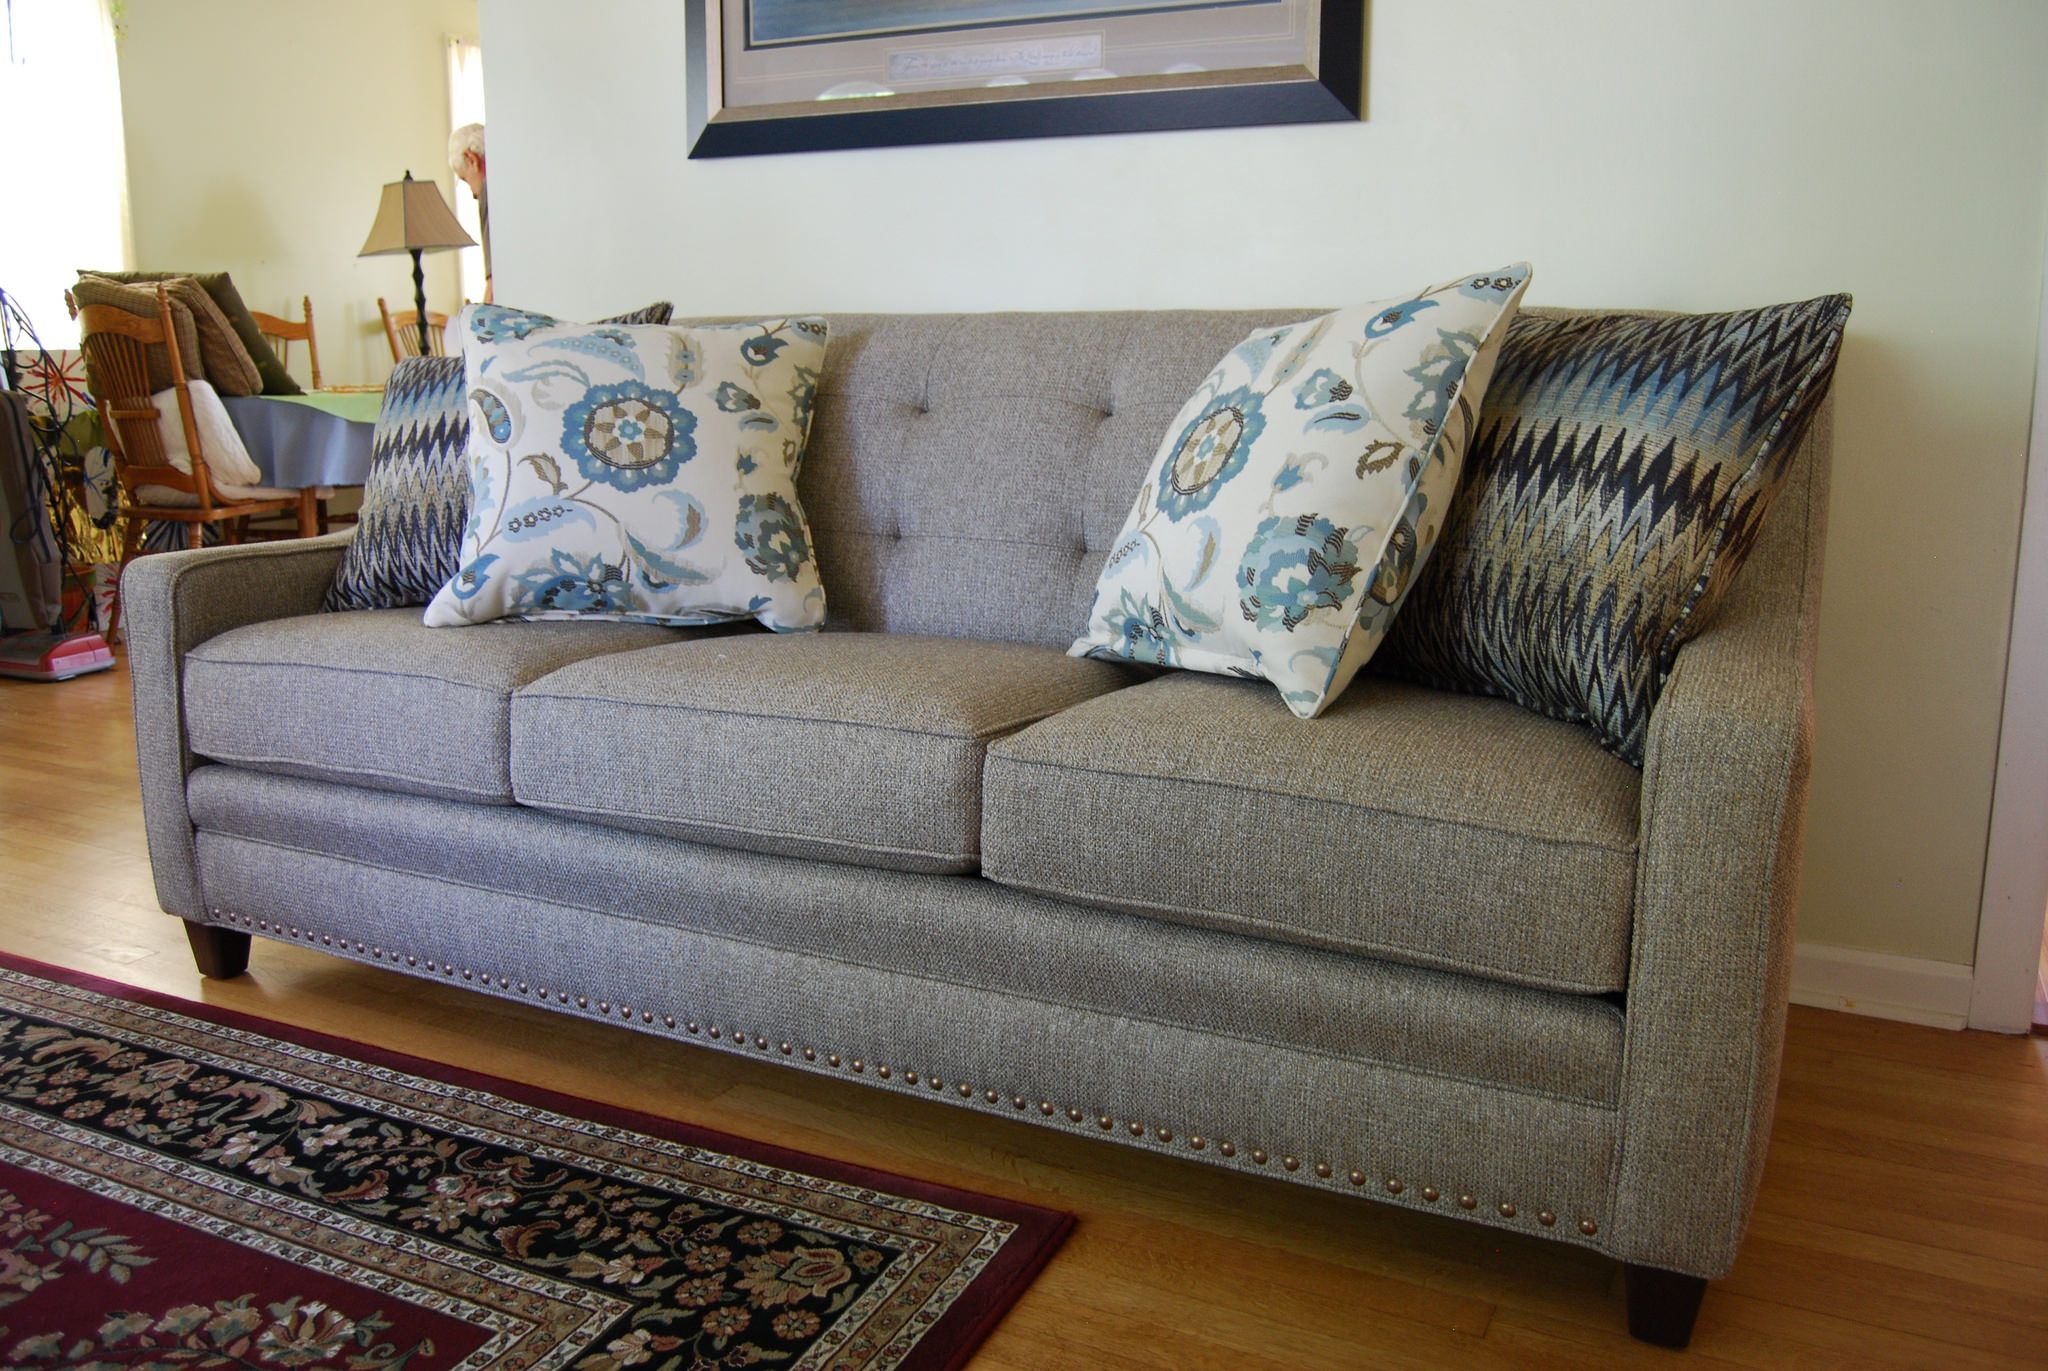 Home Decorators Tufted Sofa Cream Sofas Gumtree 203 By Smith Brothers In 2018 Decorating Ideas